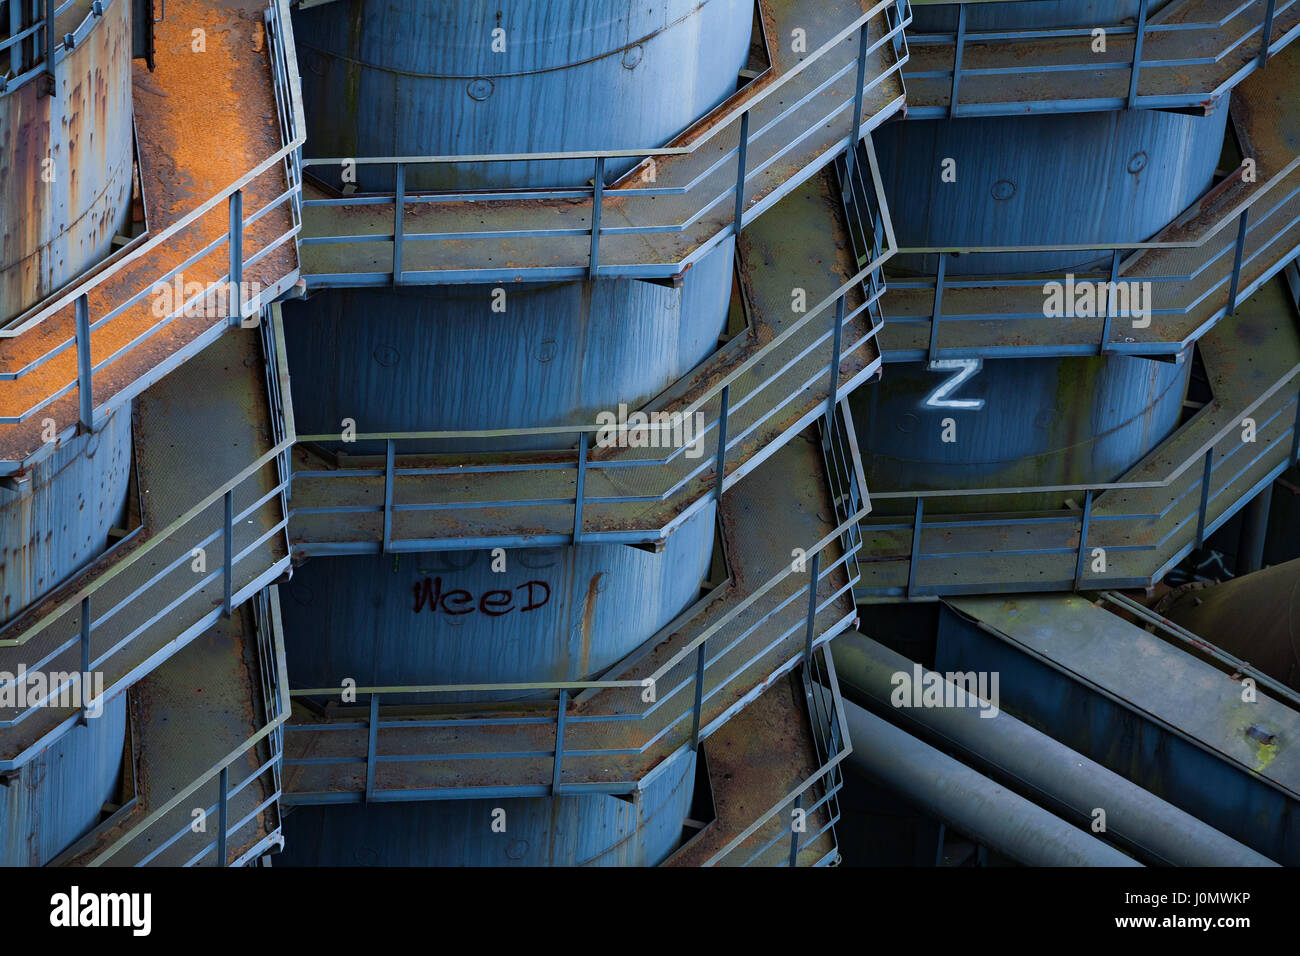 Corroding silos at Landschaftspark Duisburg-Nord, in Germany - Stock Image